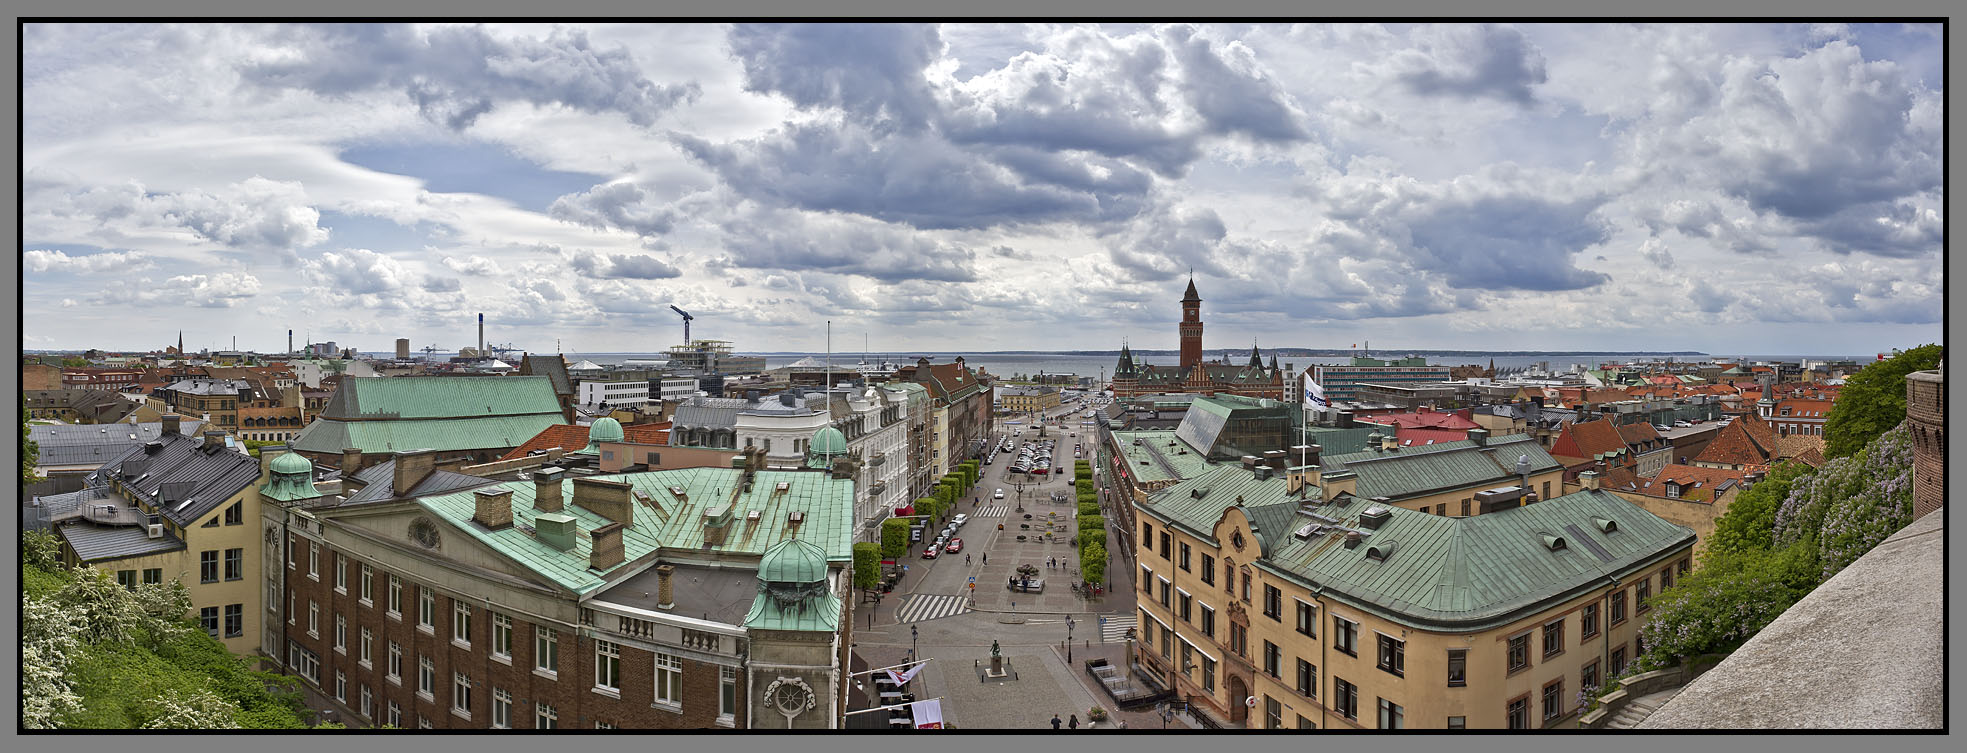 Sweden, Helsingborg; Karnan Tower - view from the top